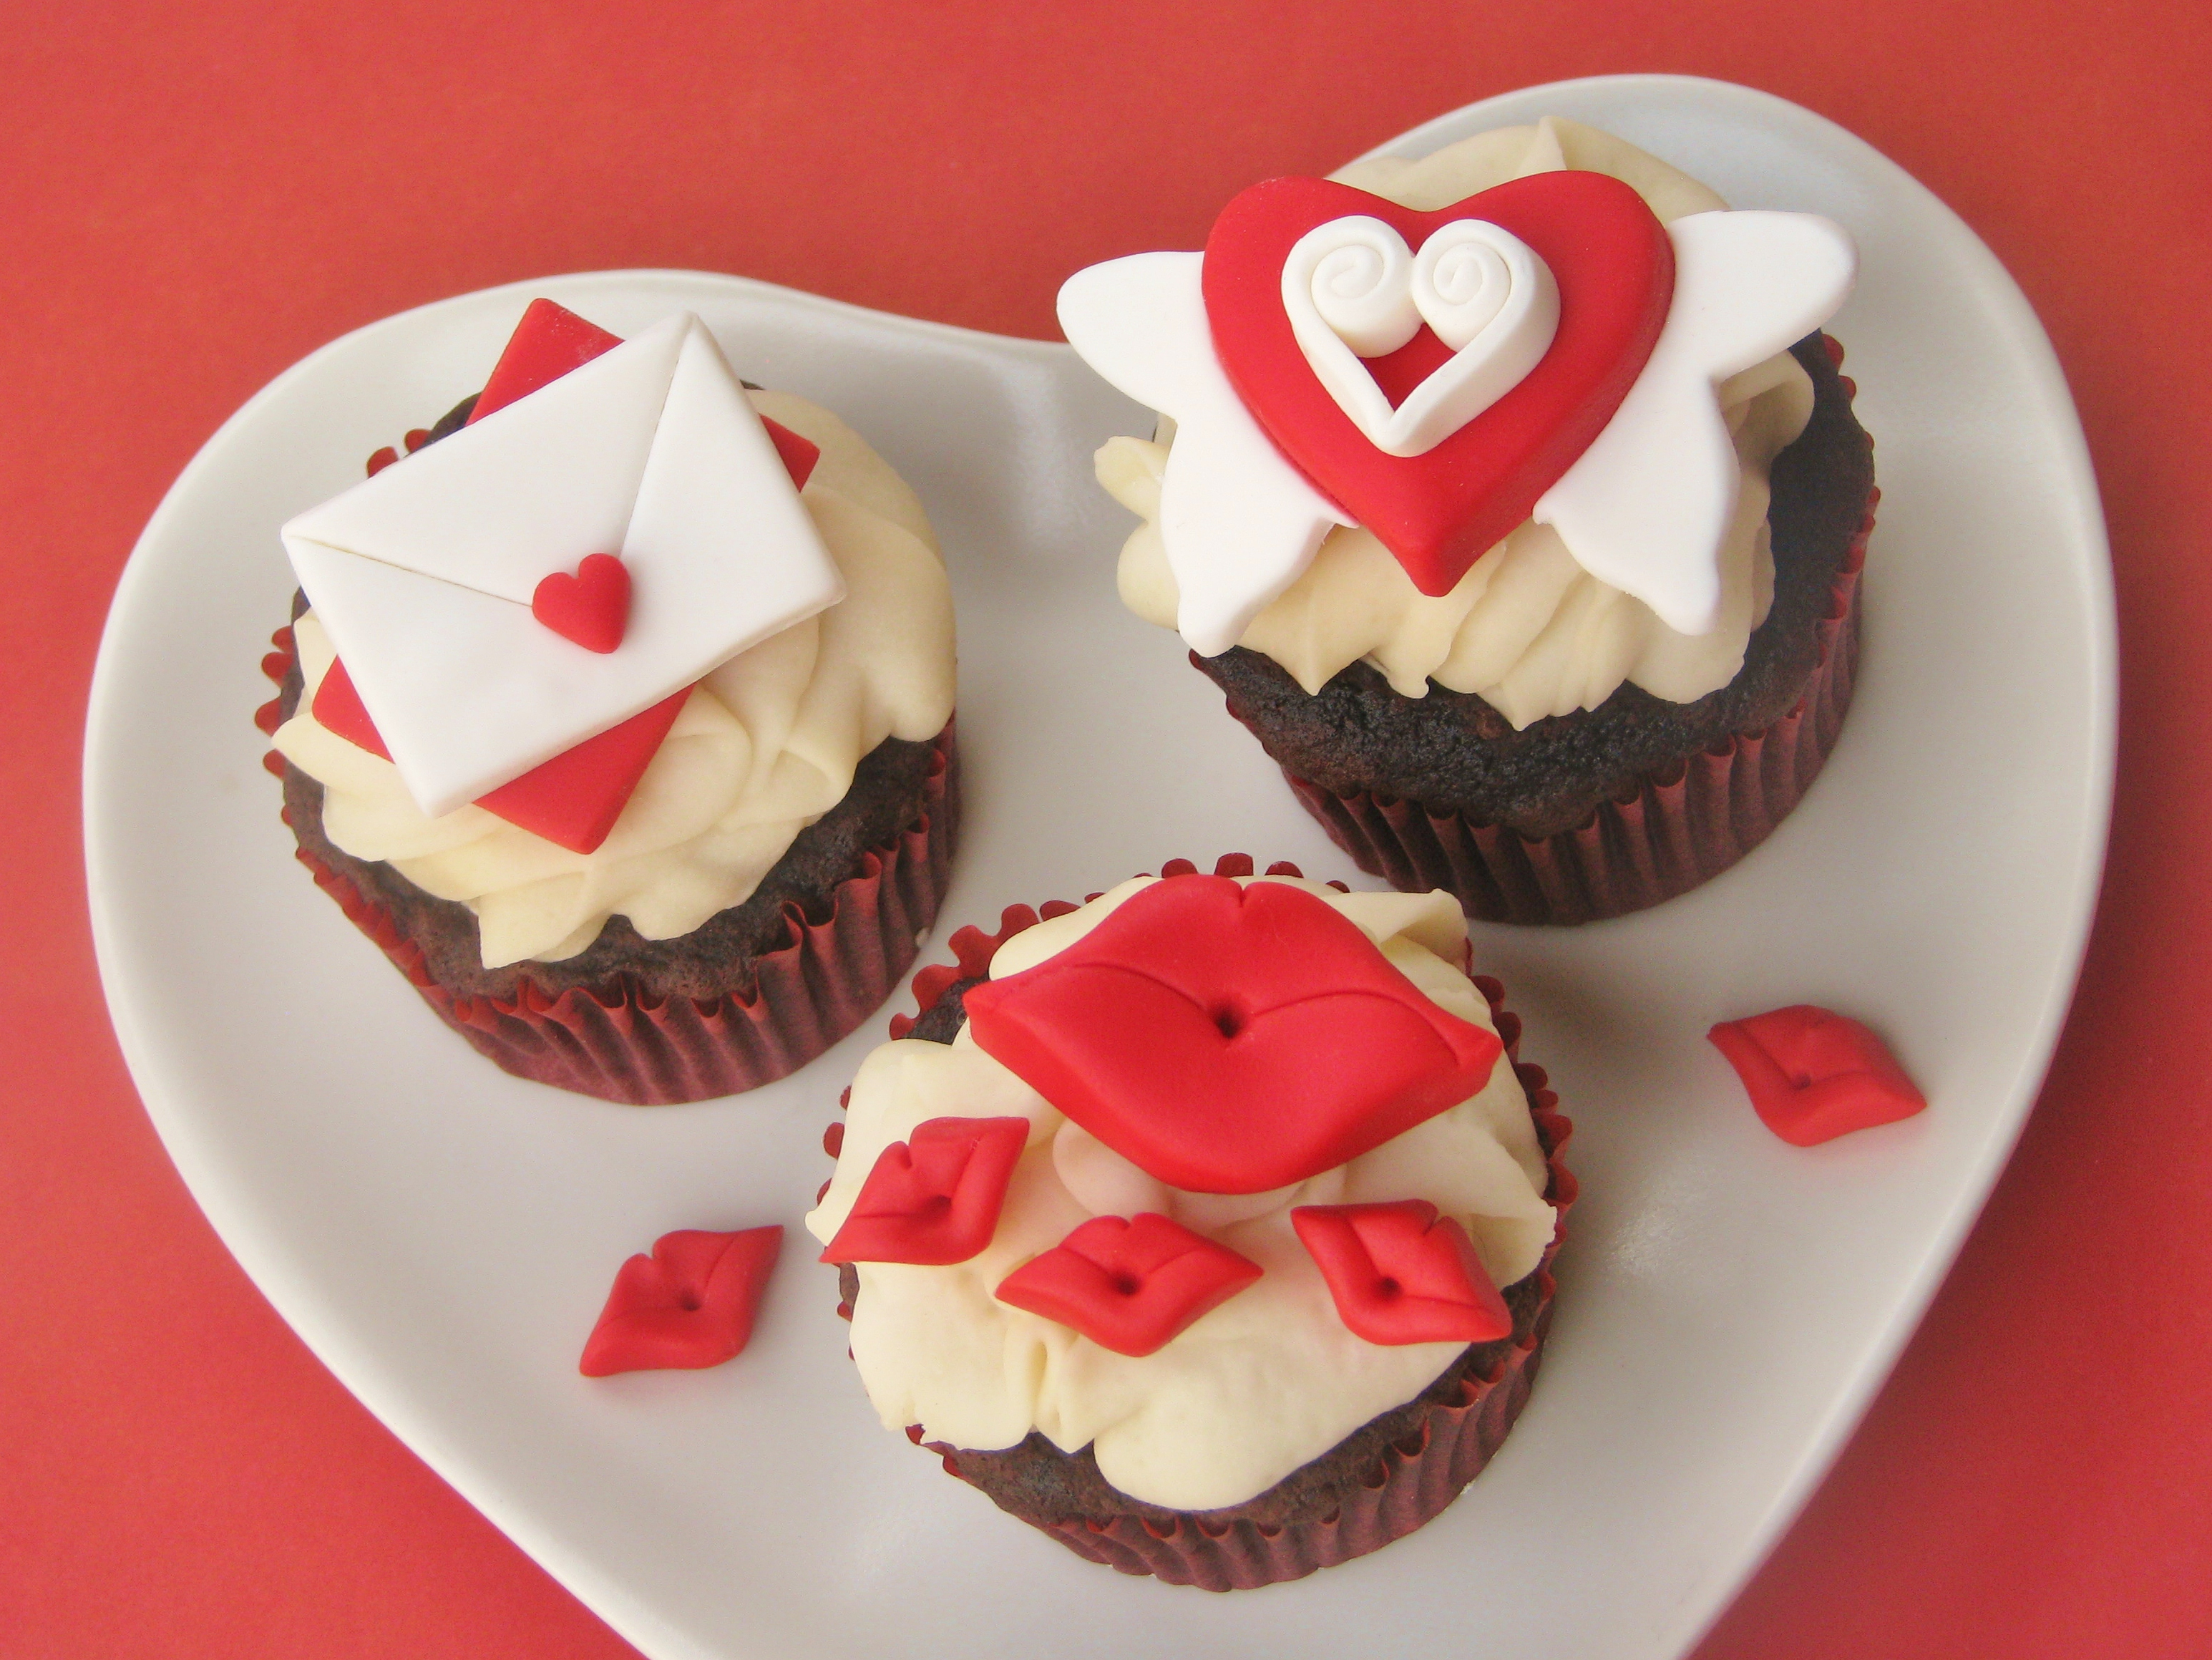 DIY: How To Make Easy And Adorable Valentineu0027s Day Cupcake Toppers